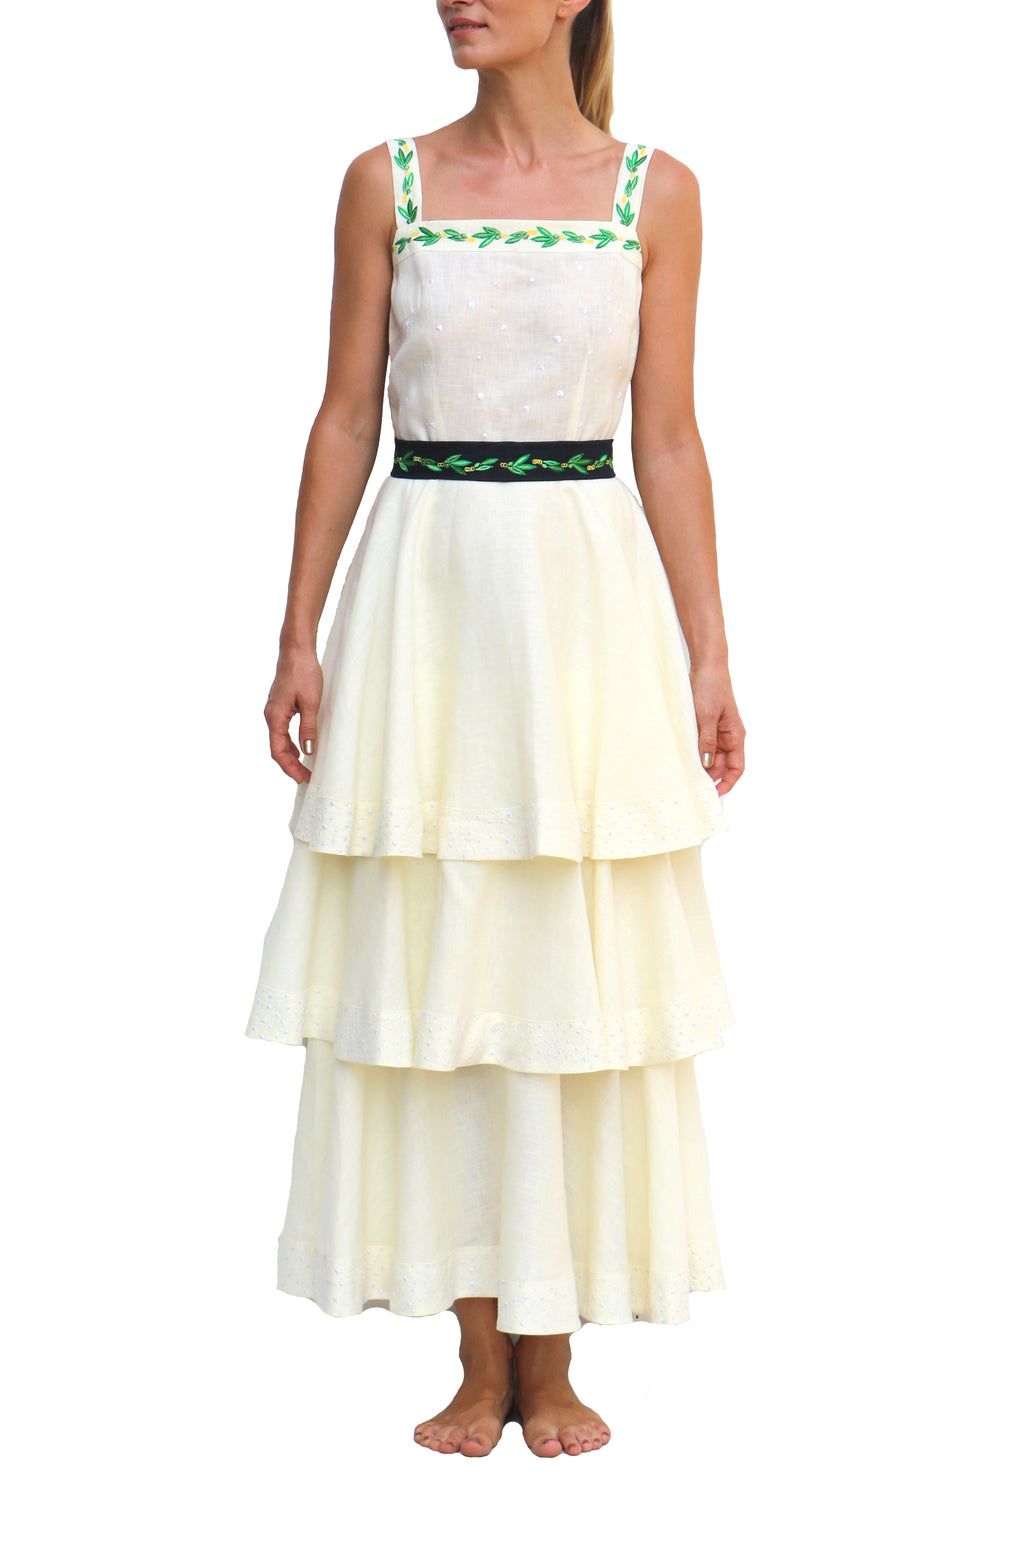 FANM MON Carline Cream Midi Belted Embroidered Linen Dress